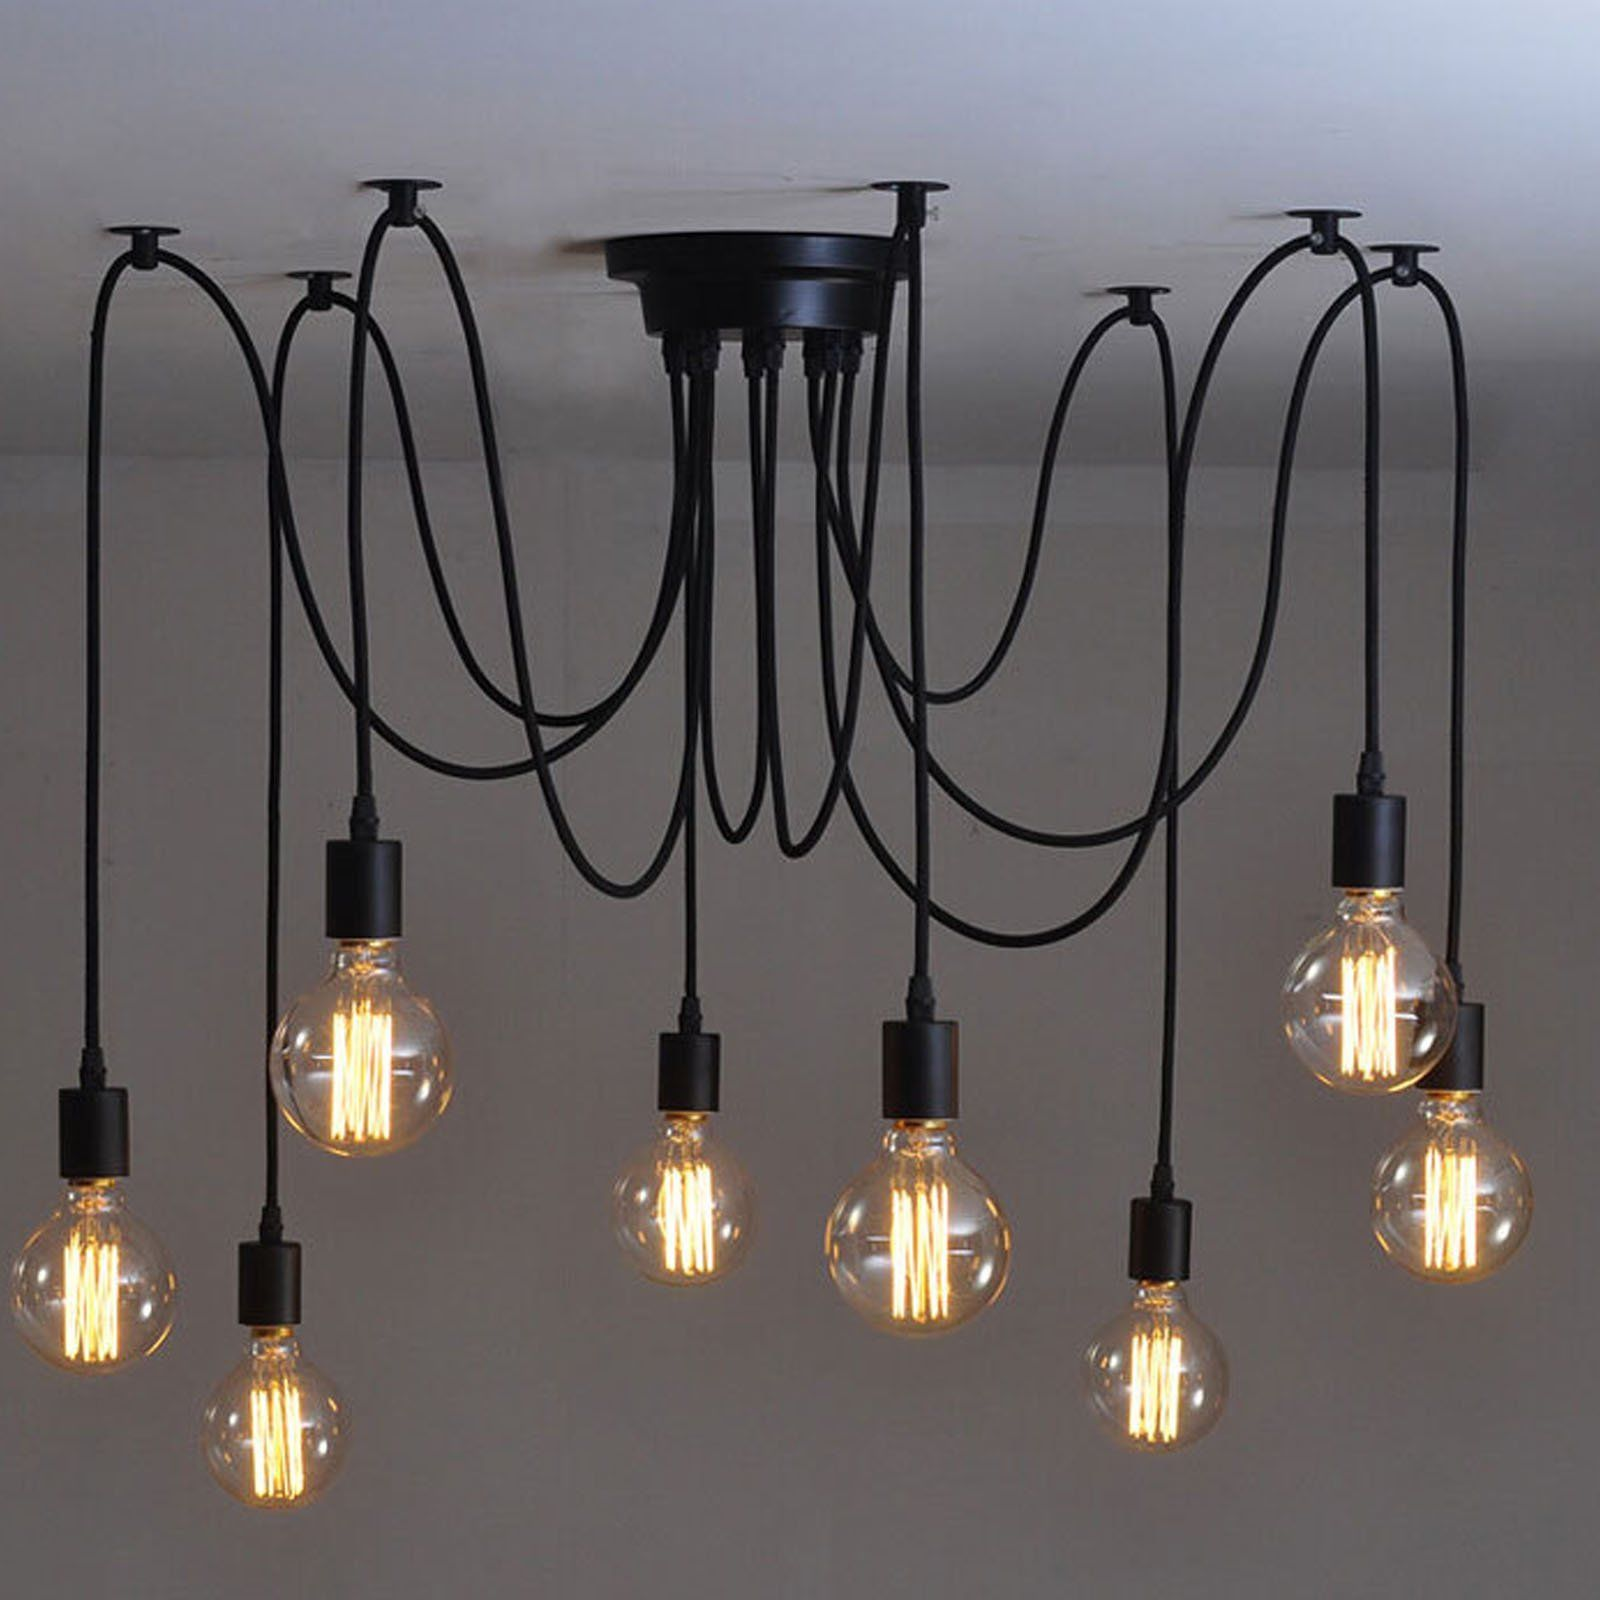 steel the spider chandelier heads room nordic products tbs black living